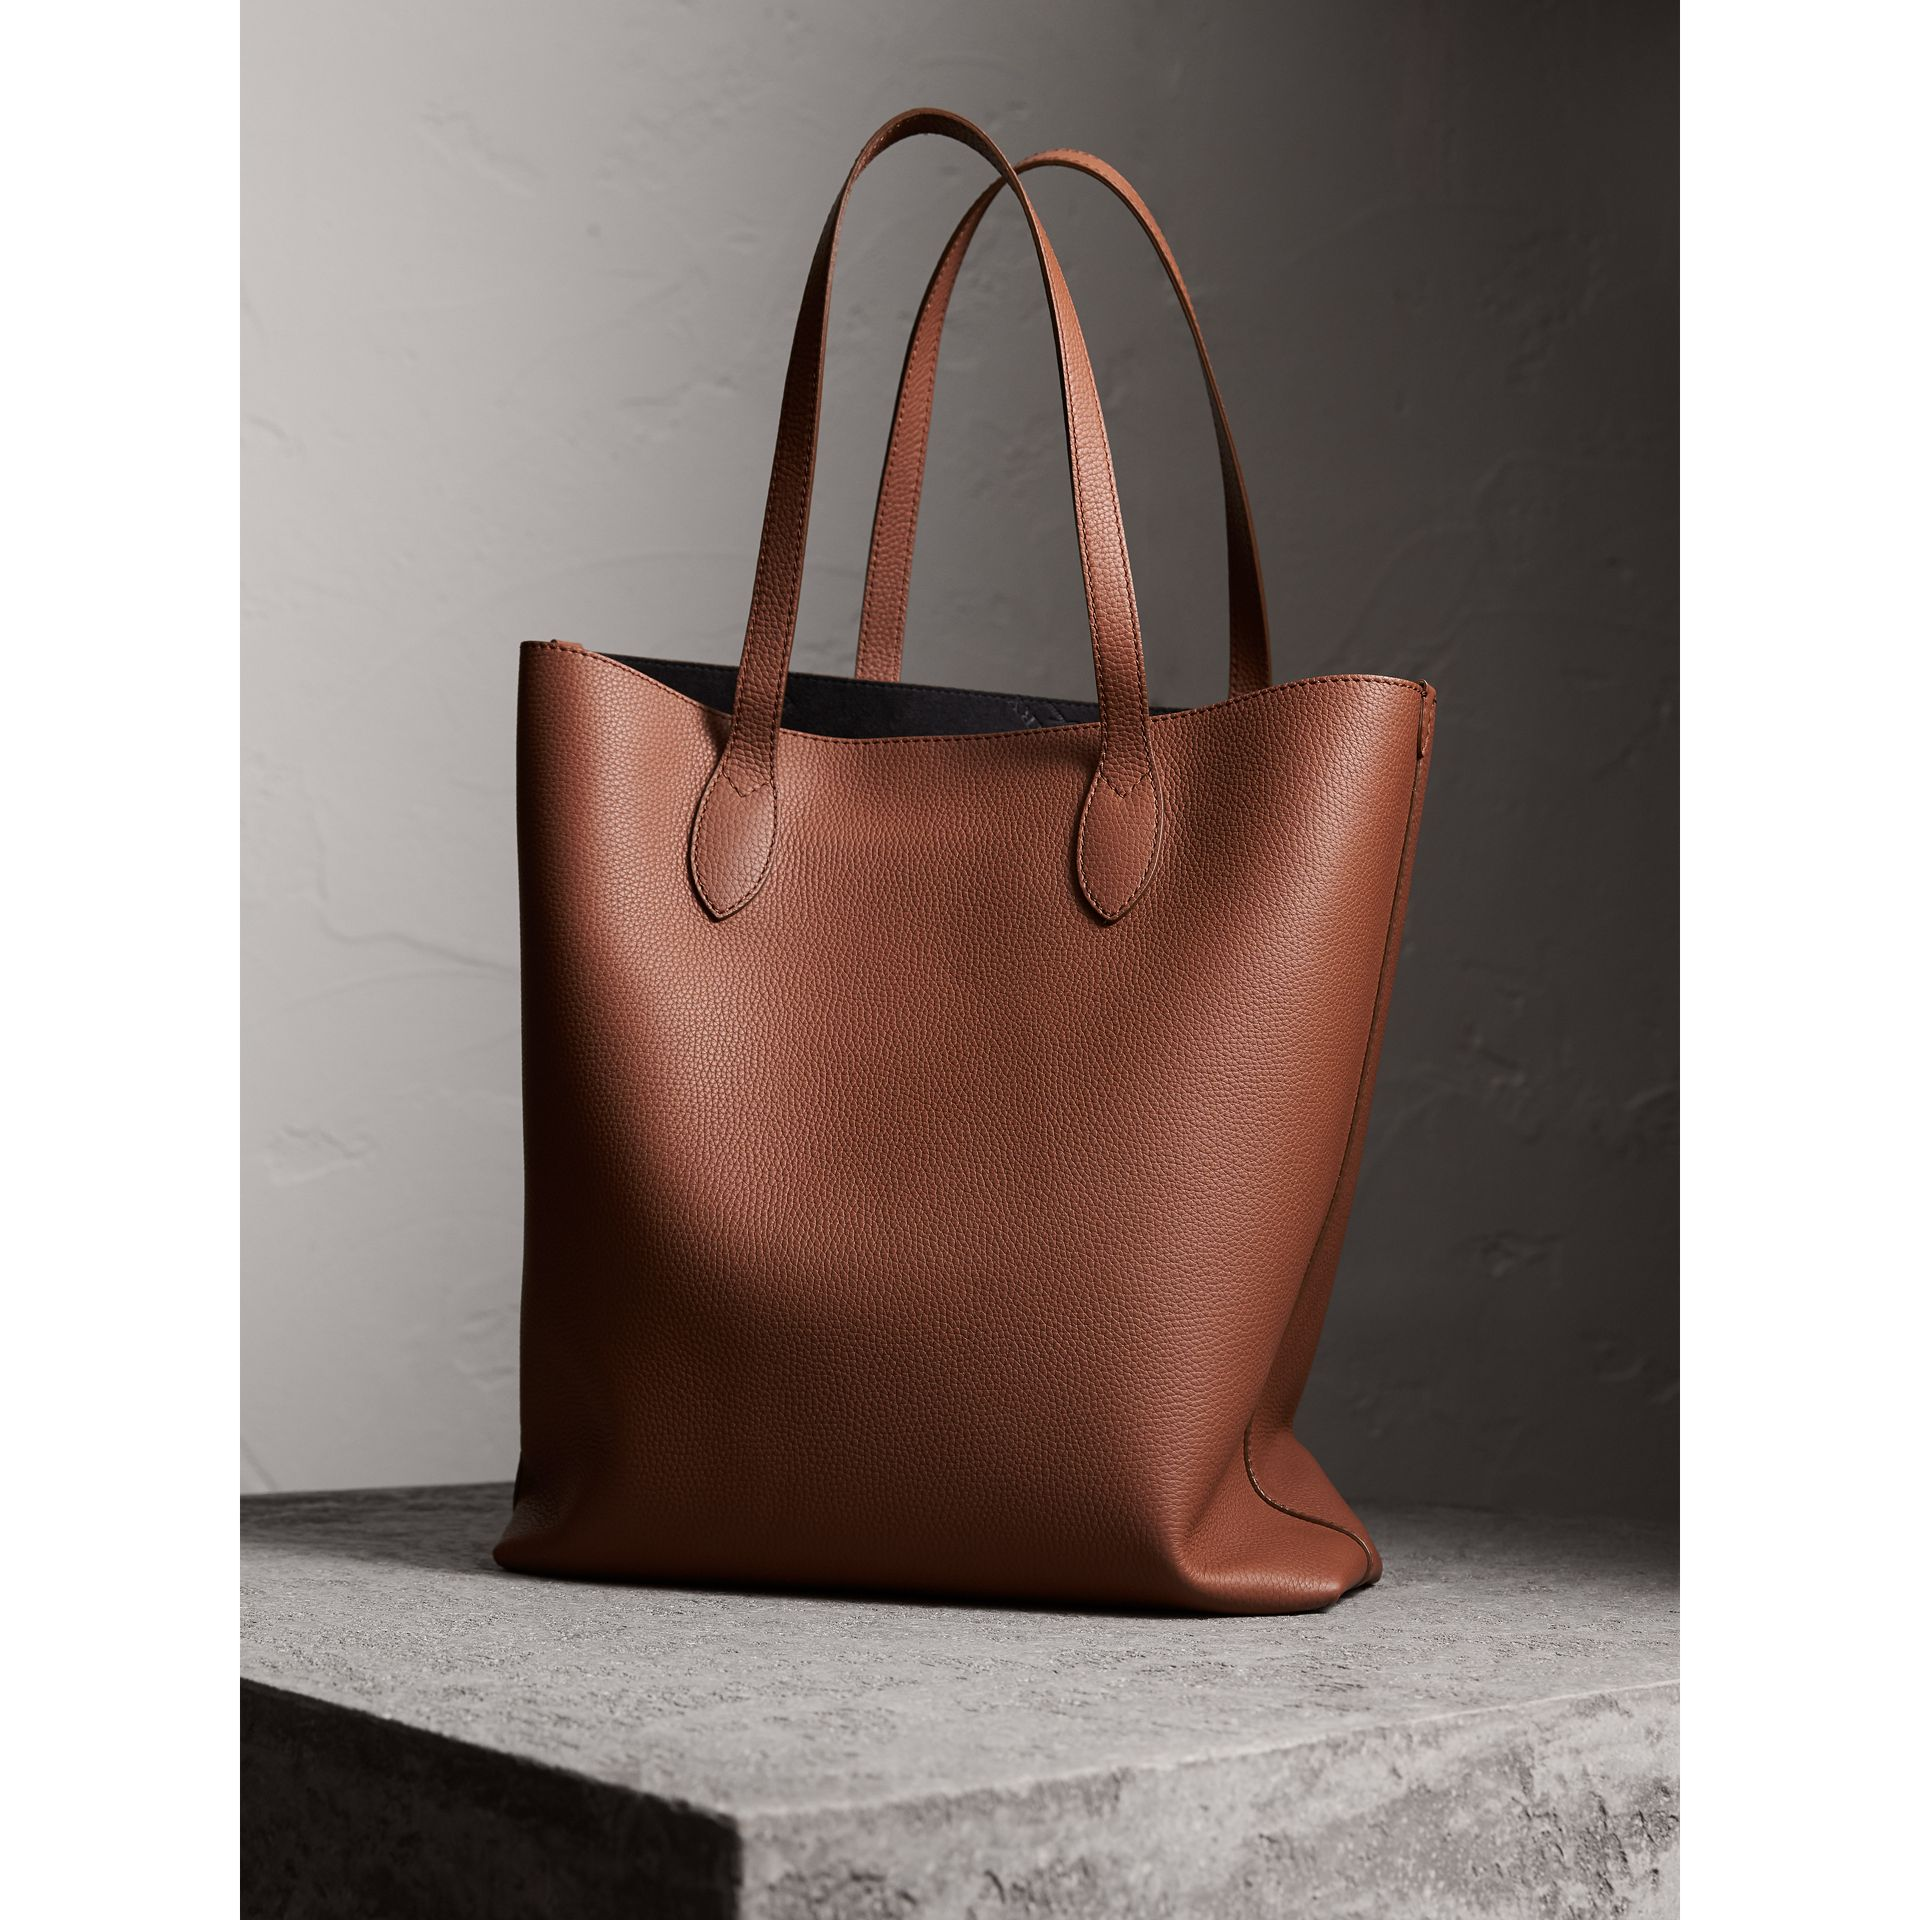 Sac tote moyen en cuir estampé (Brun Noisette) | Burberry - photo de la galerie 5